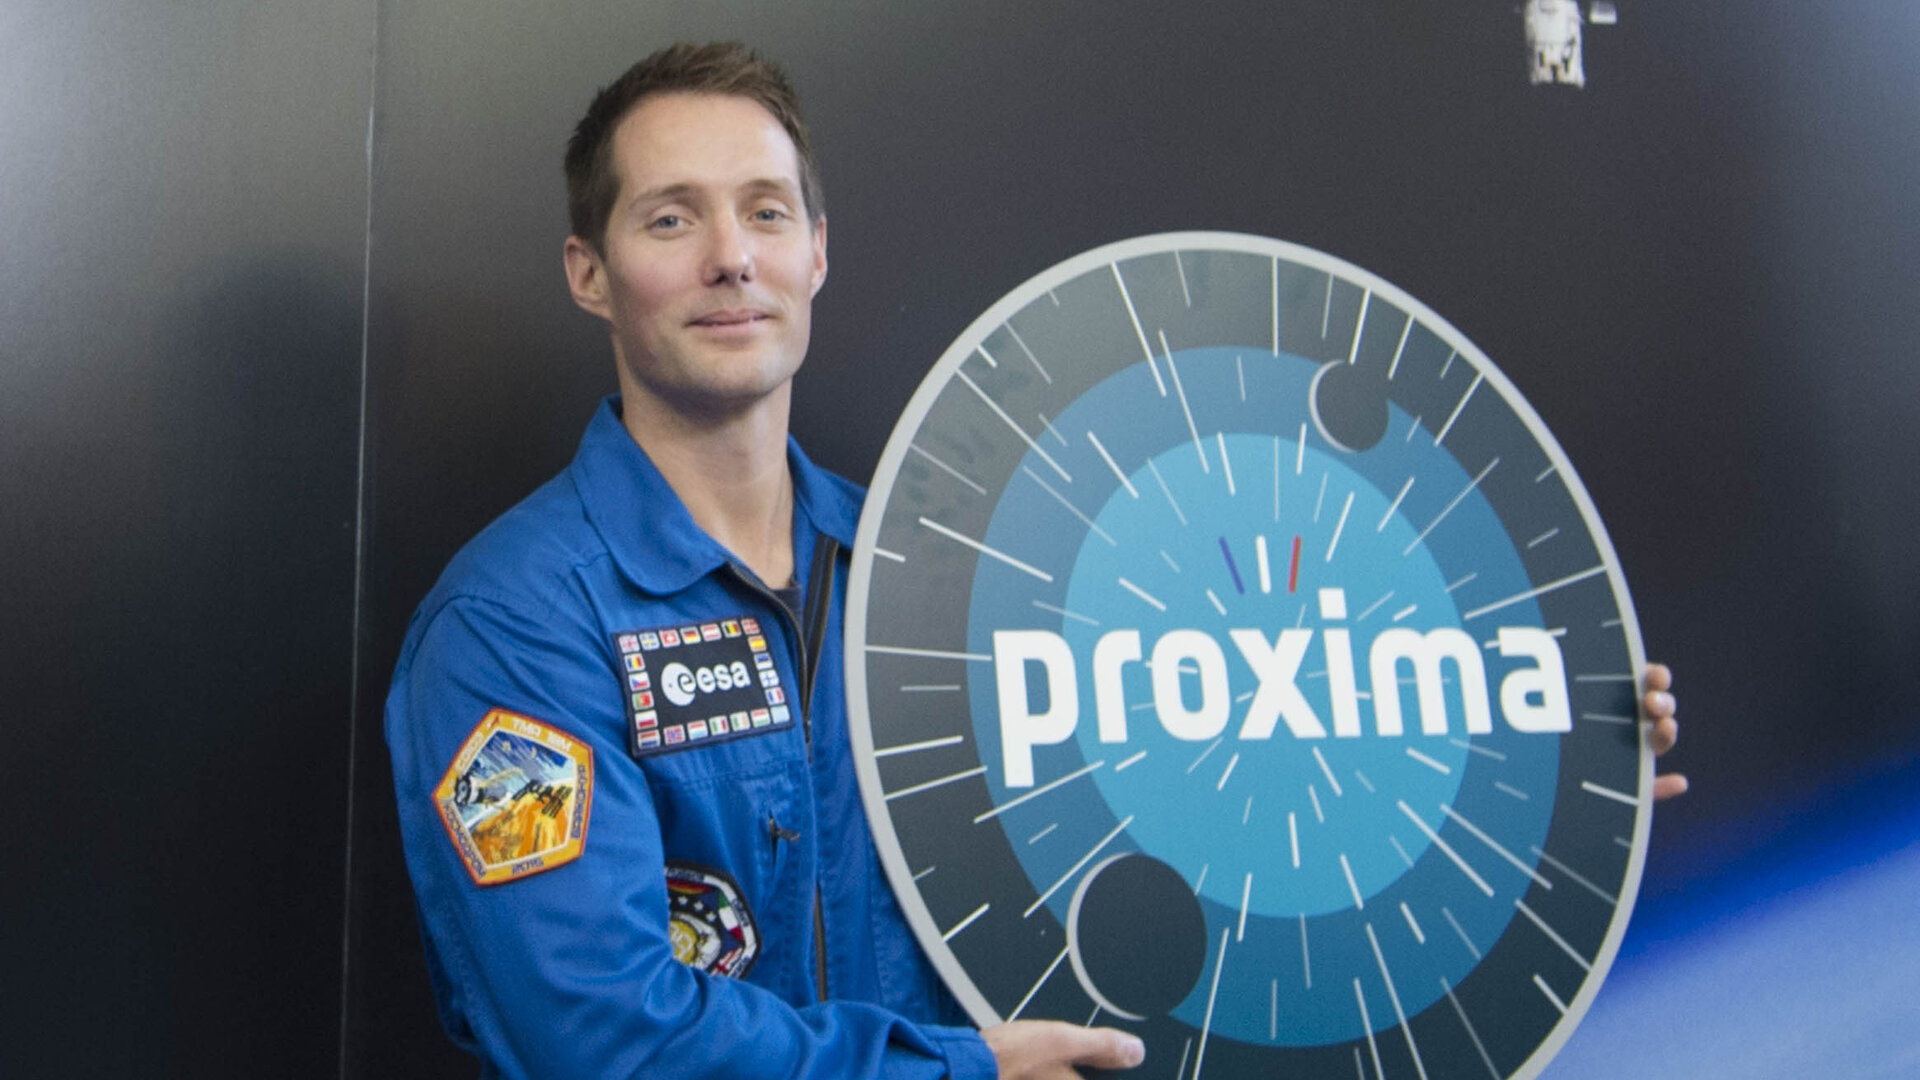 Thomas with Proxima logo